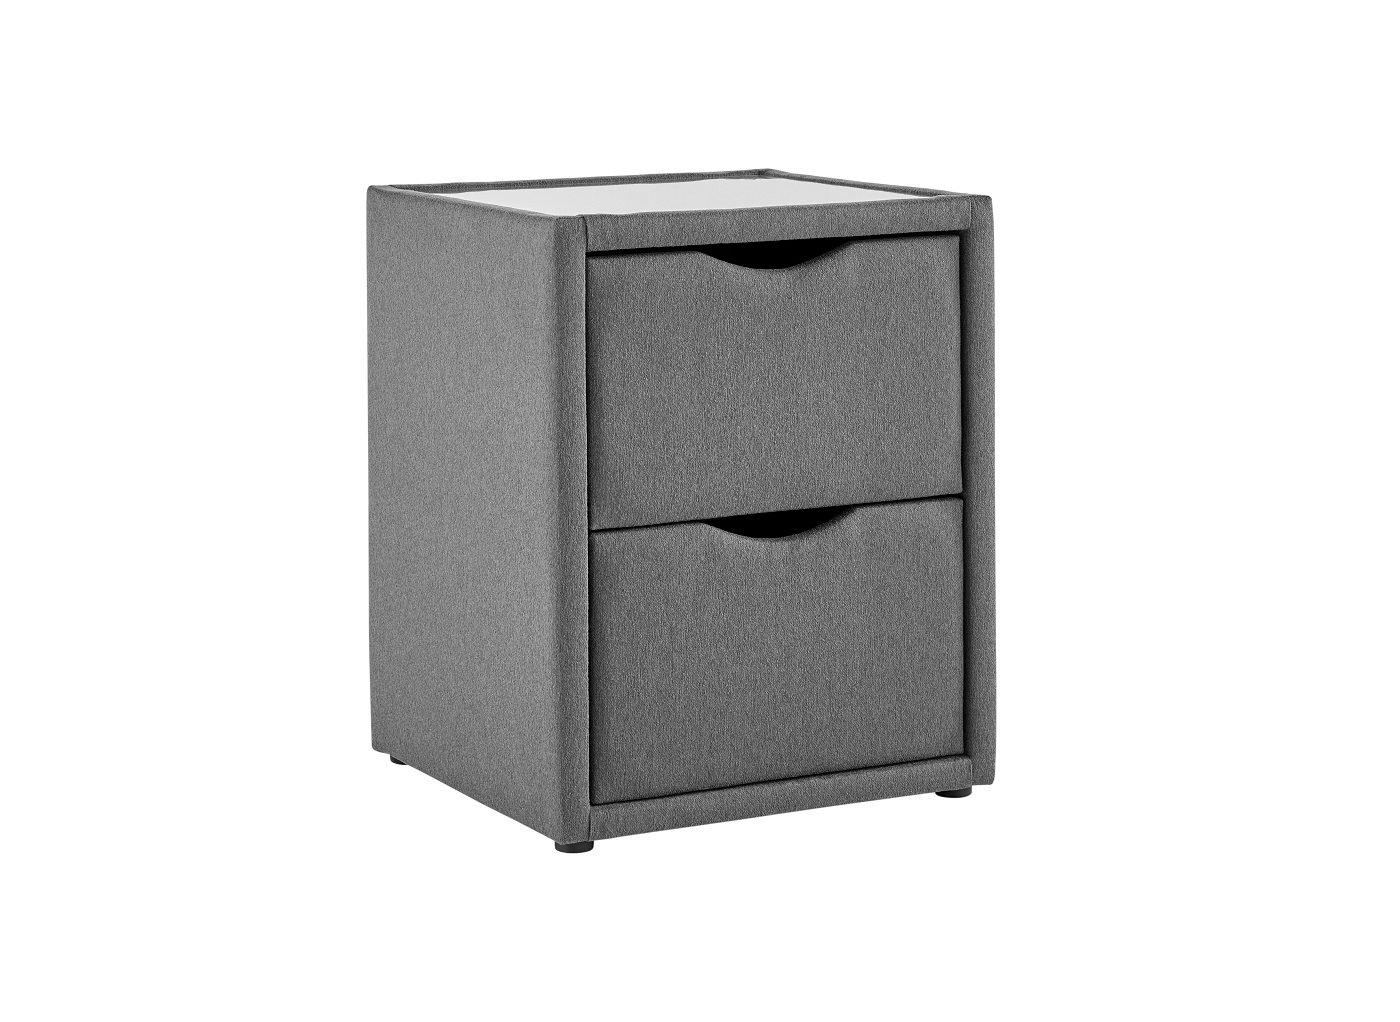 Luxury 2 Drawer Bedside Table – Dark Grey (£99)